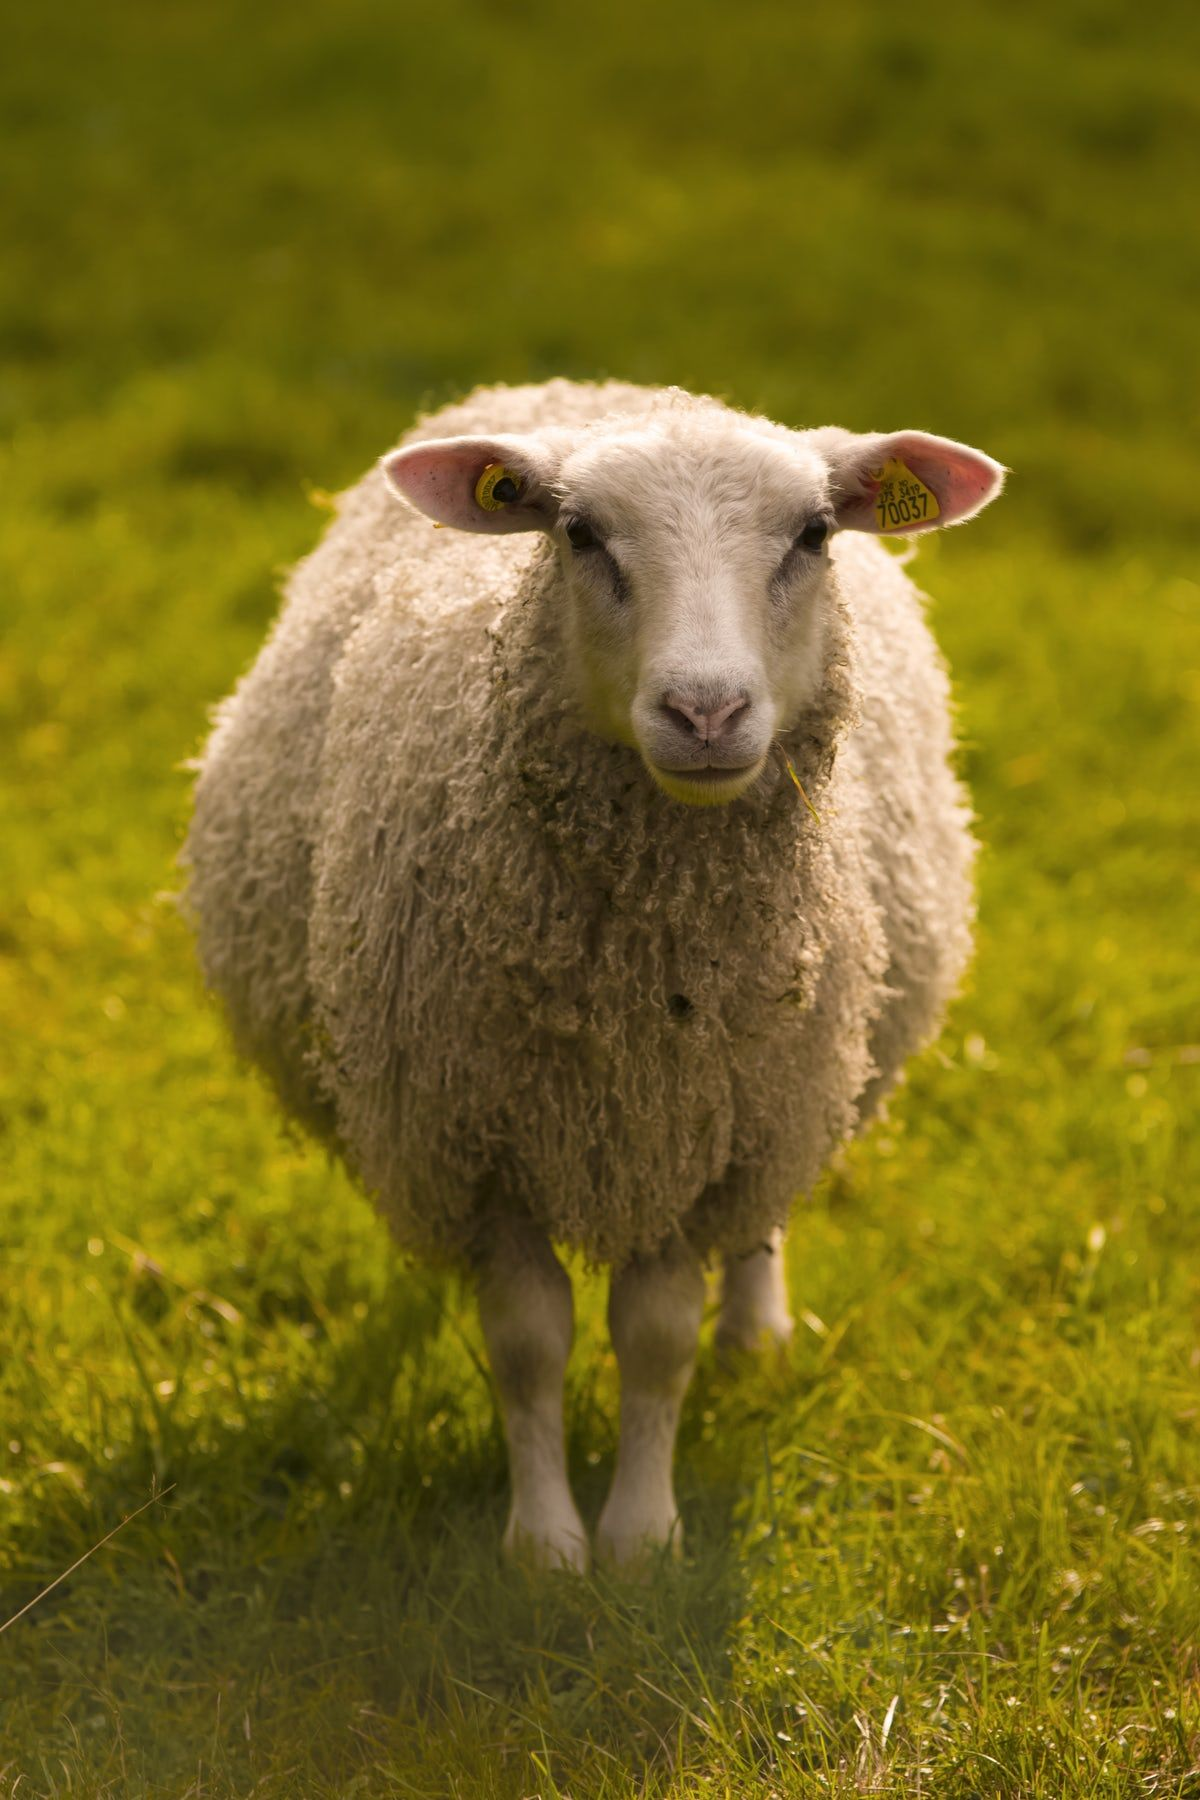 500+ Sheep Images Download Free Pictures on Unsplash